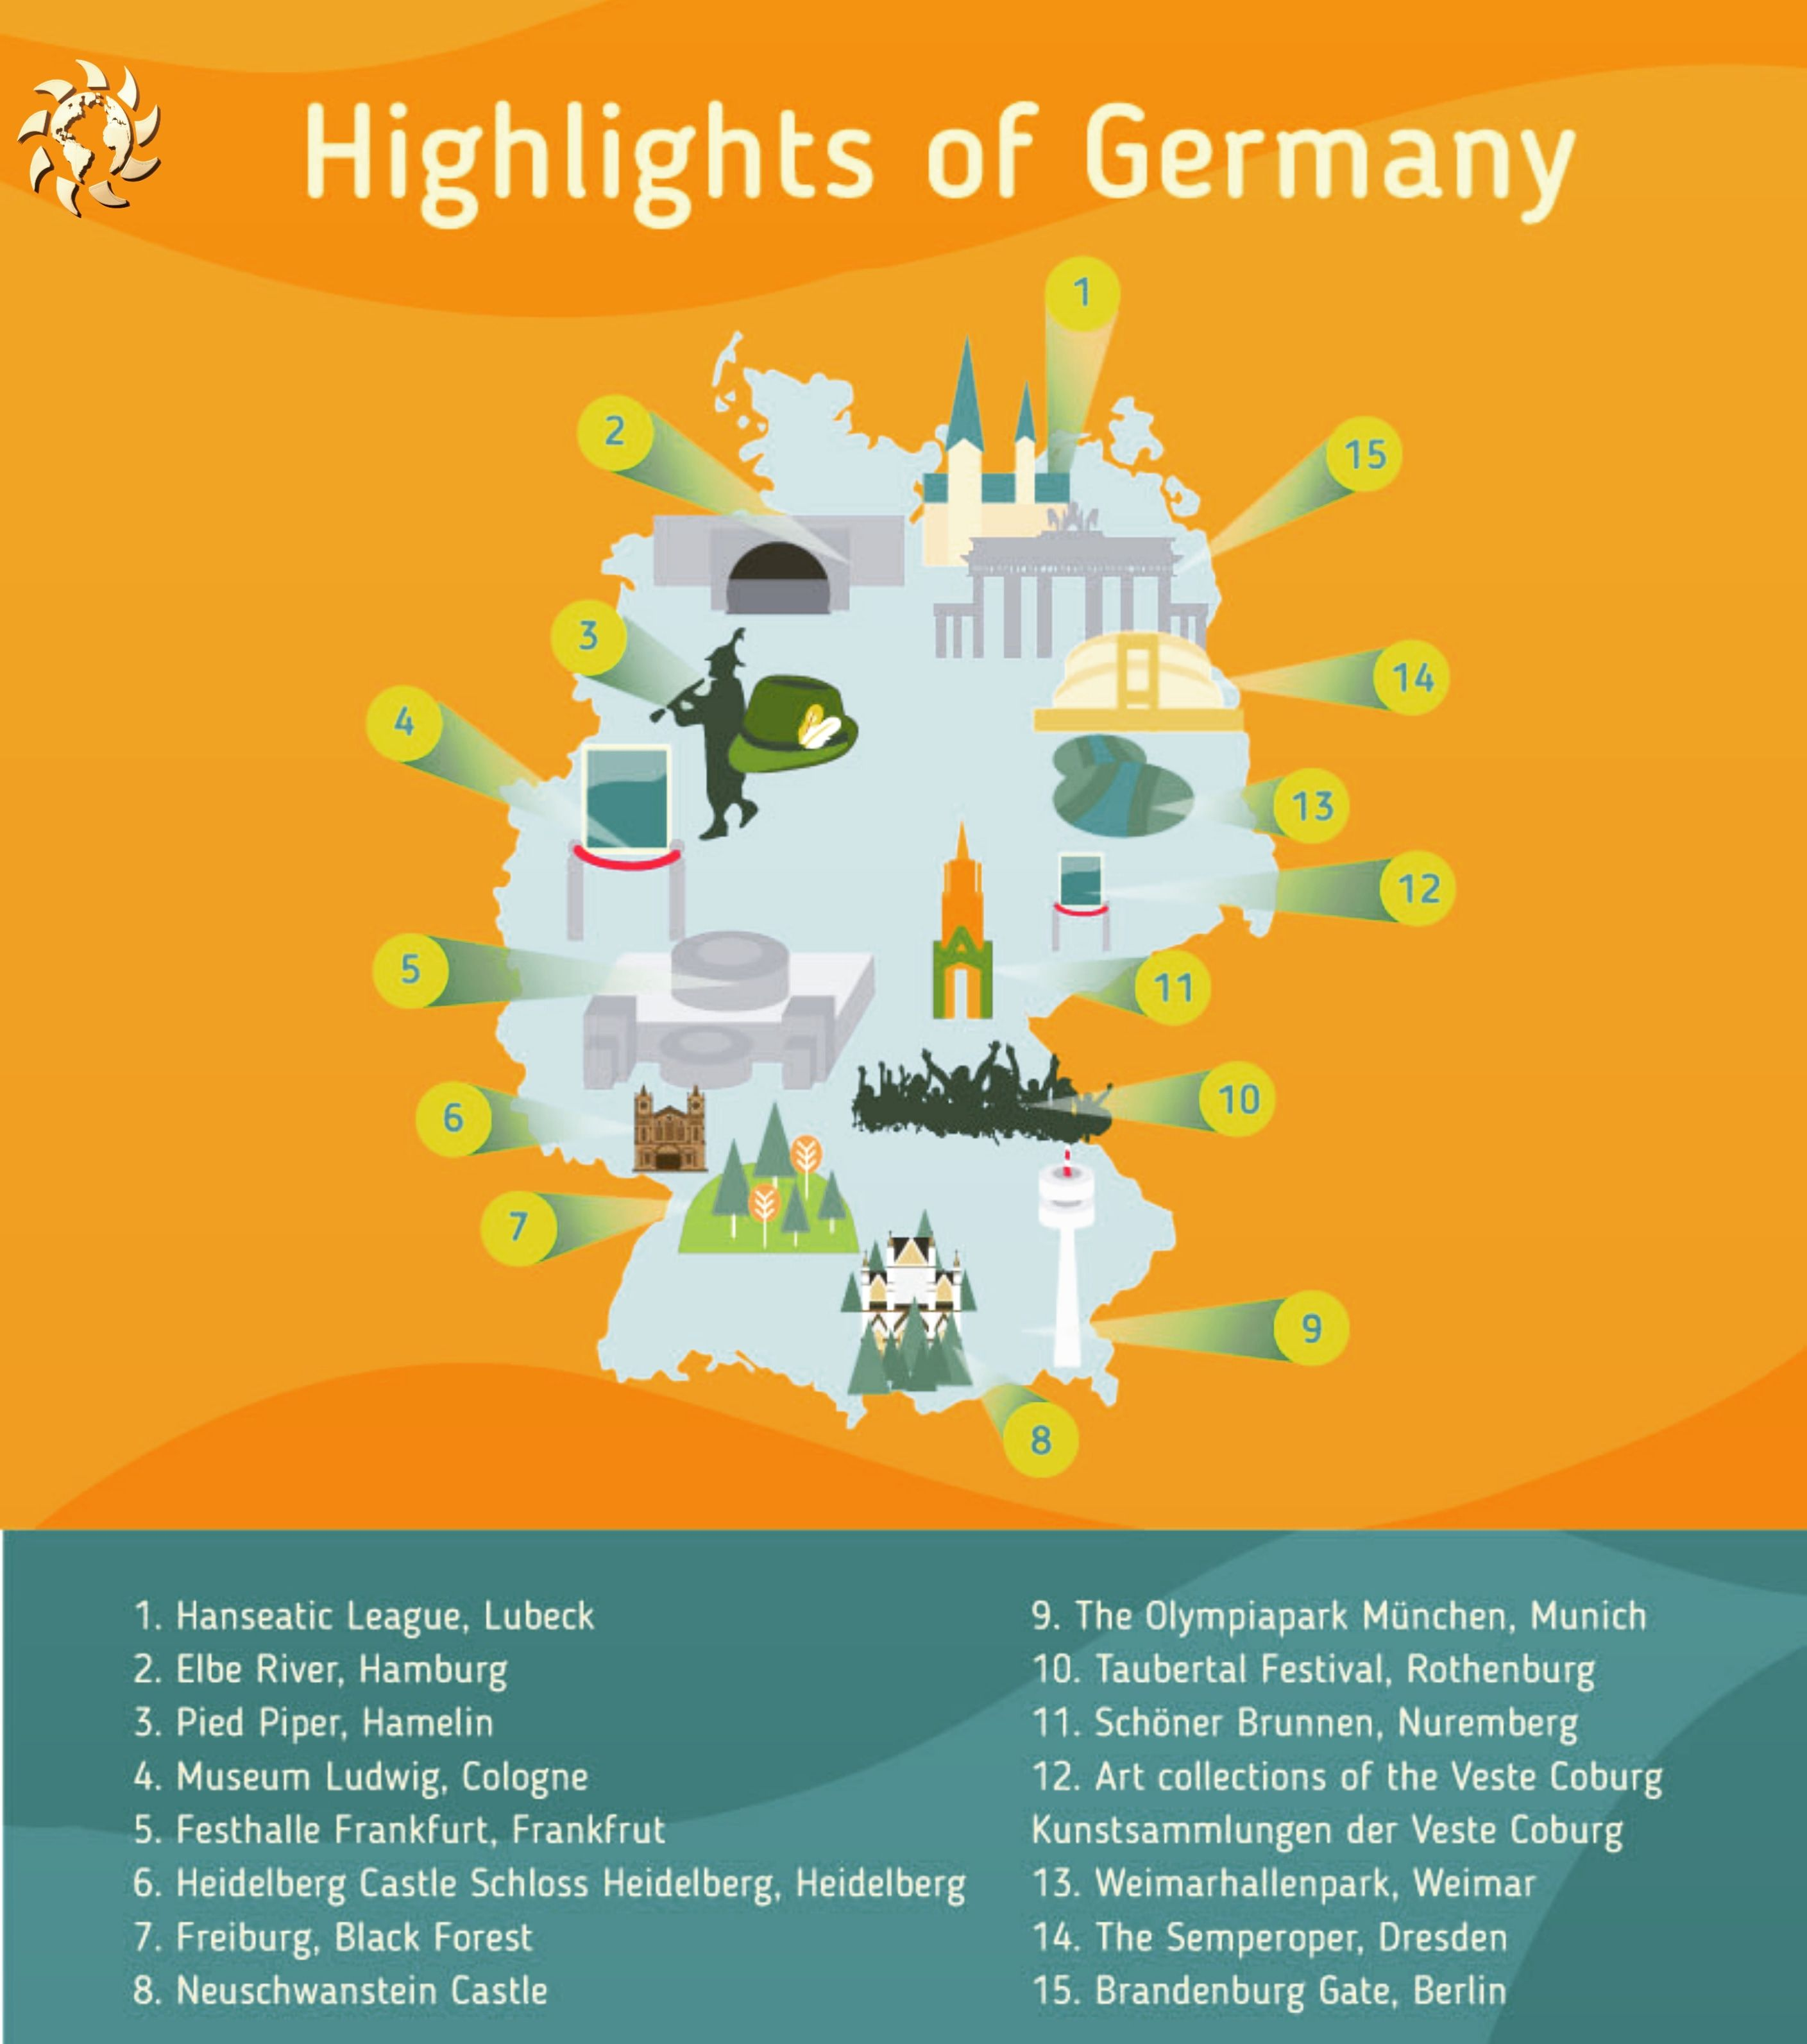 FREE EDUCATION STUDY IN GERMANY 🇩🇪🇩🇪🇩🇪🇩🇪🇩🇪🇩🇪🇩🇪🇩🇪 Level